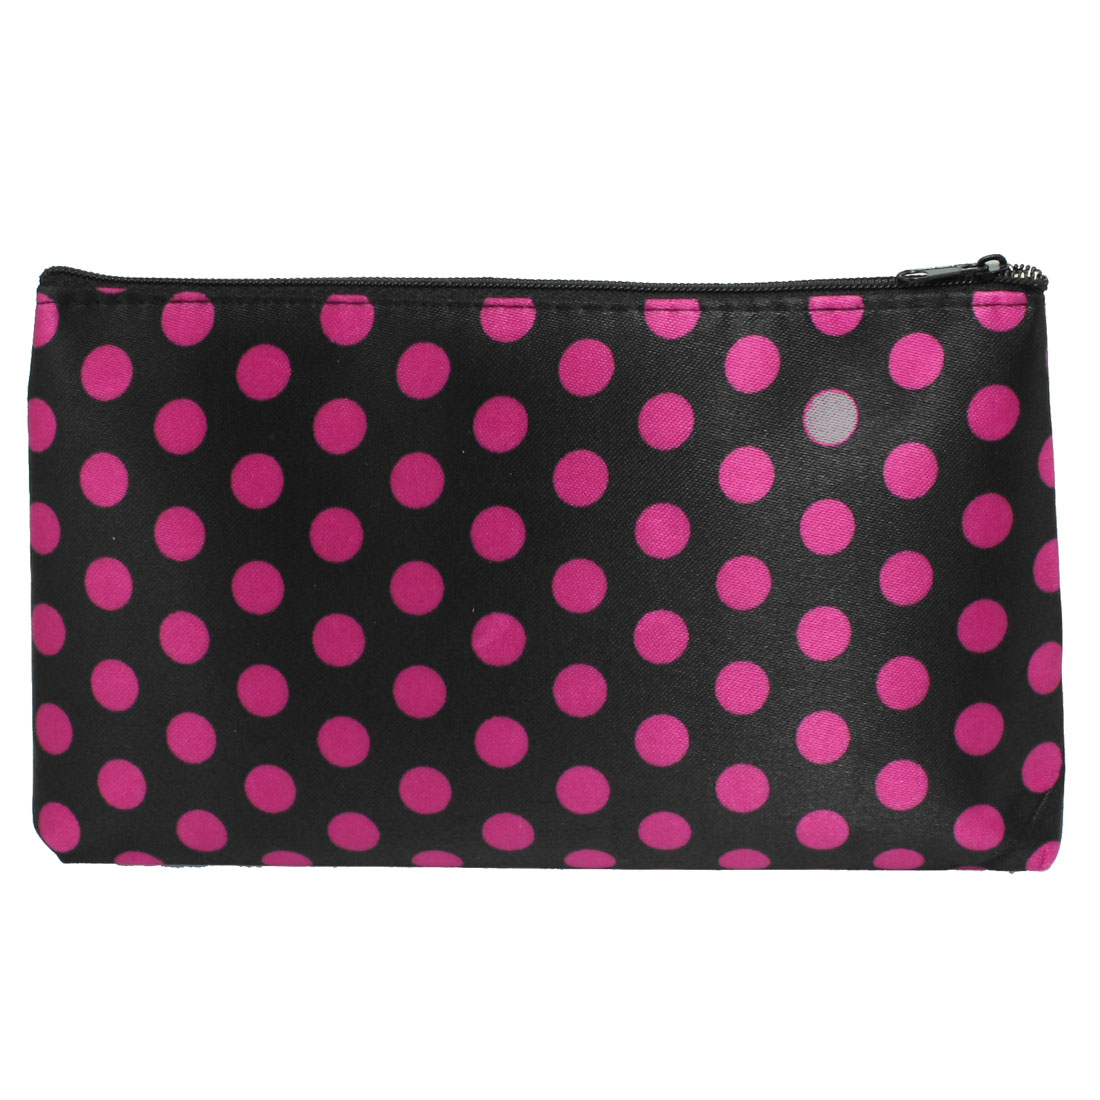 Ladies Fuchsia Dots Pattern Zipped Black Cosmetic Pouch Bag Organizer